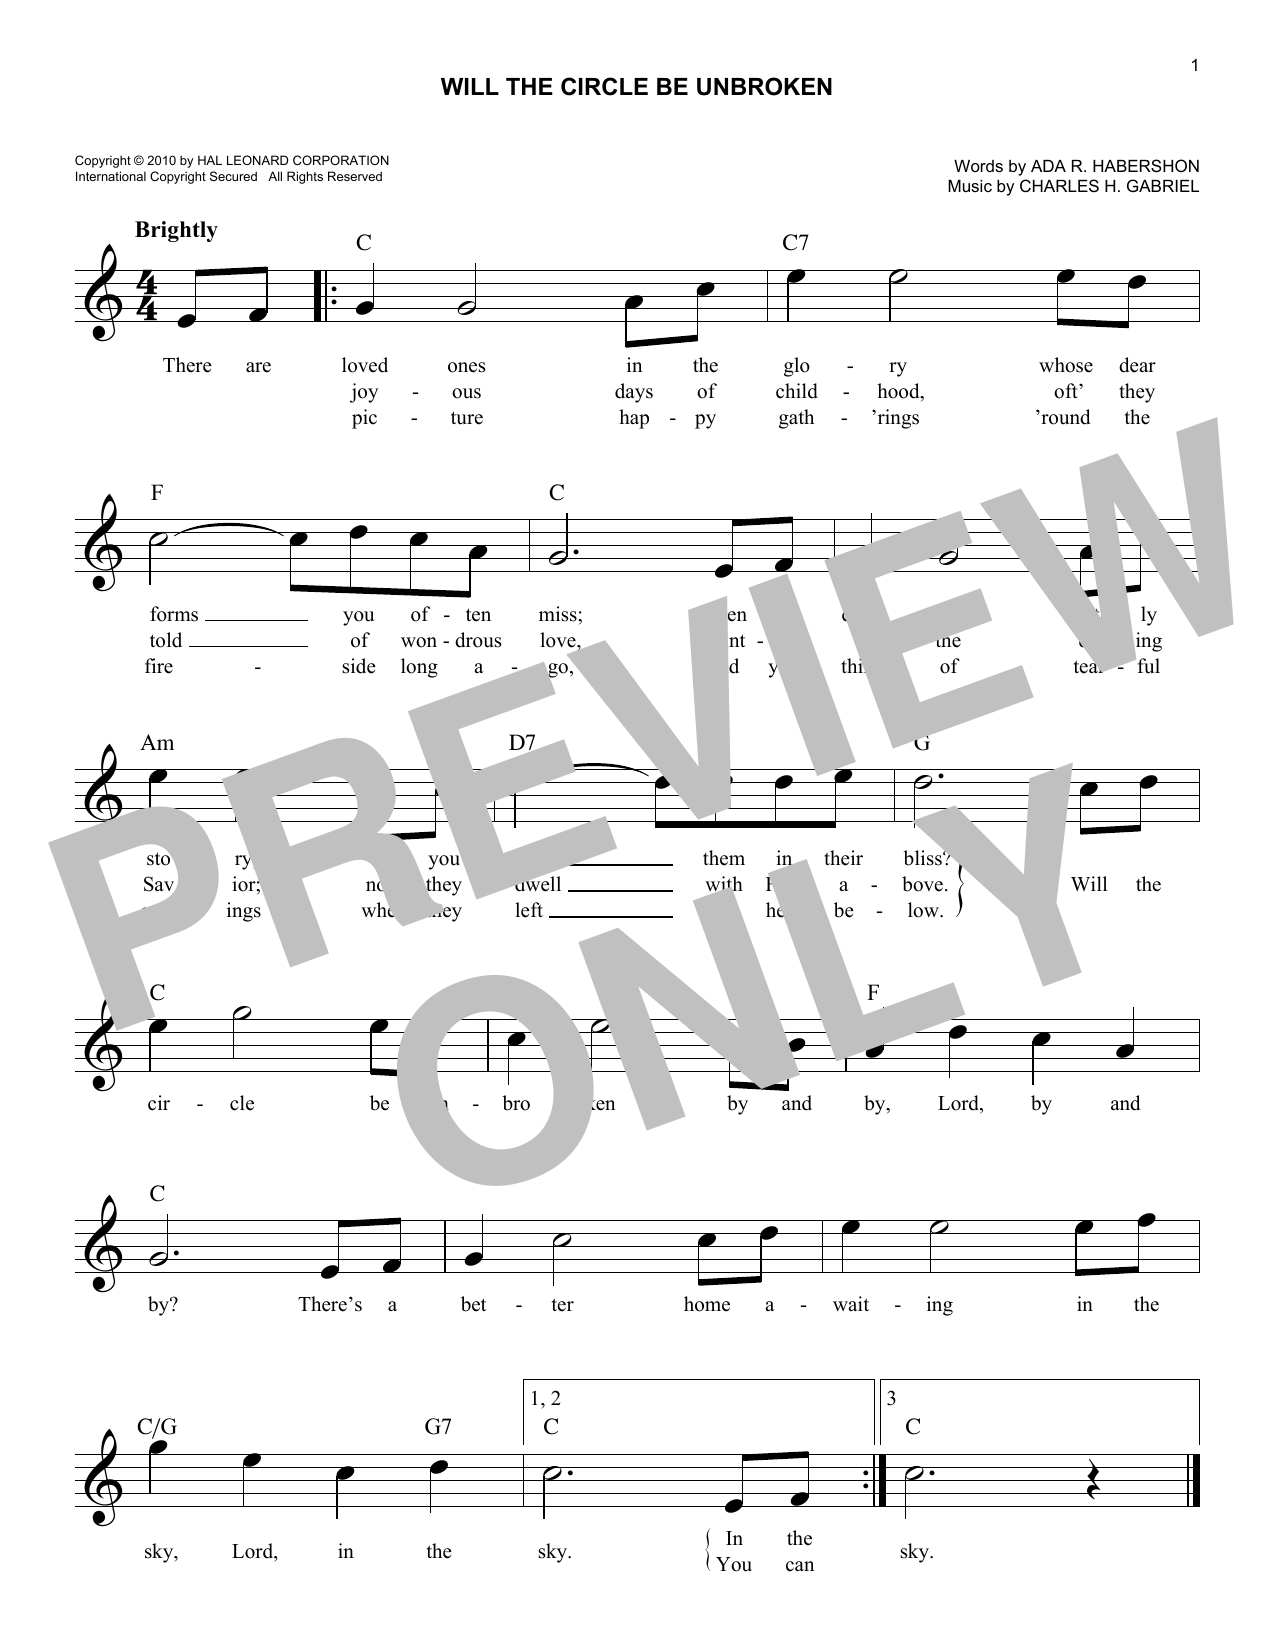 Ada R. Habershon Will The Circle Be Unbroken sheet music notes and chords. Download Printable PDF.